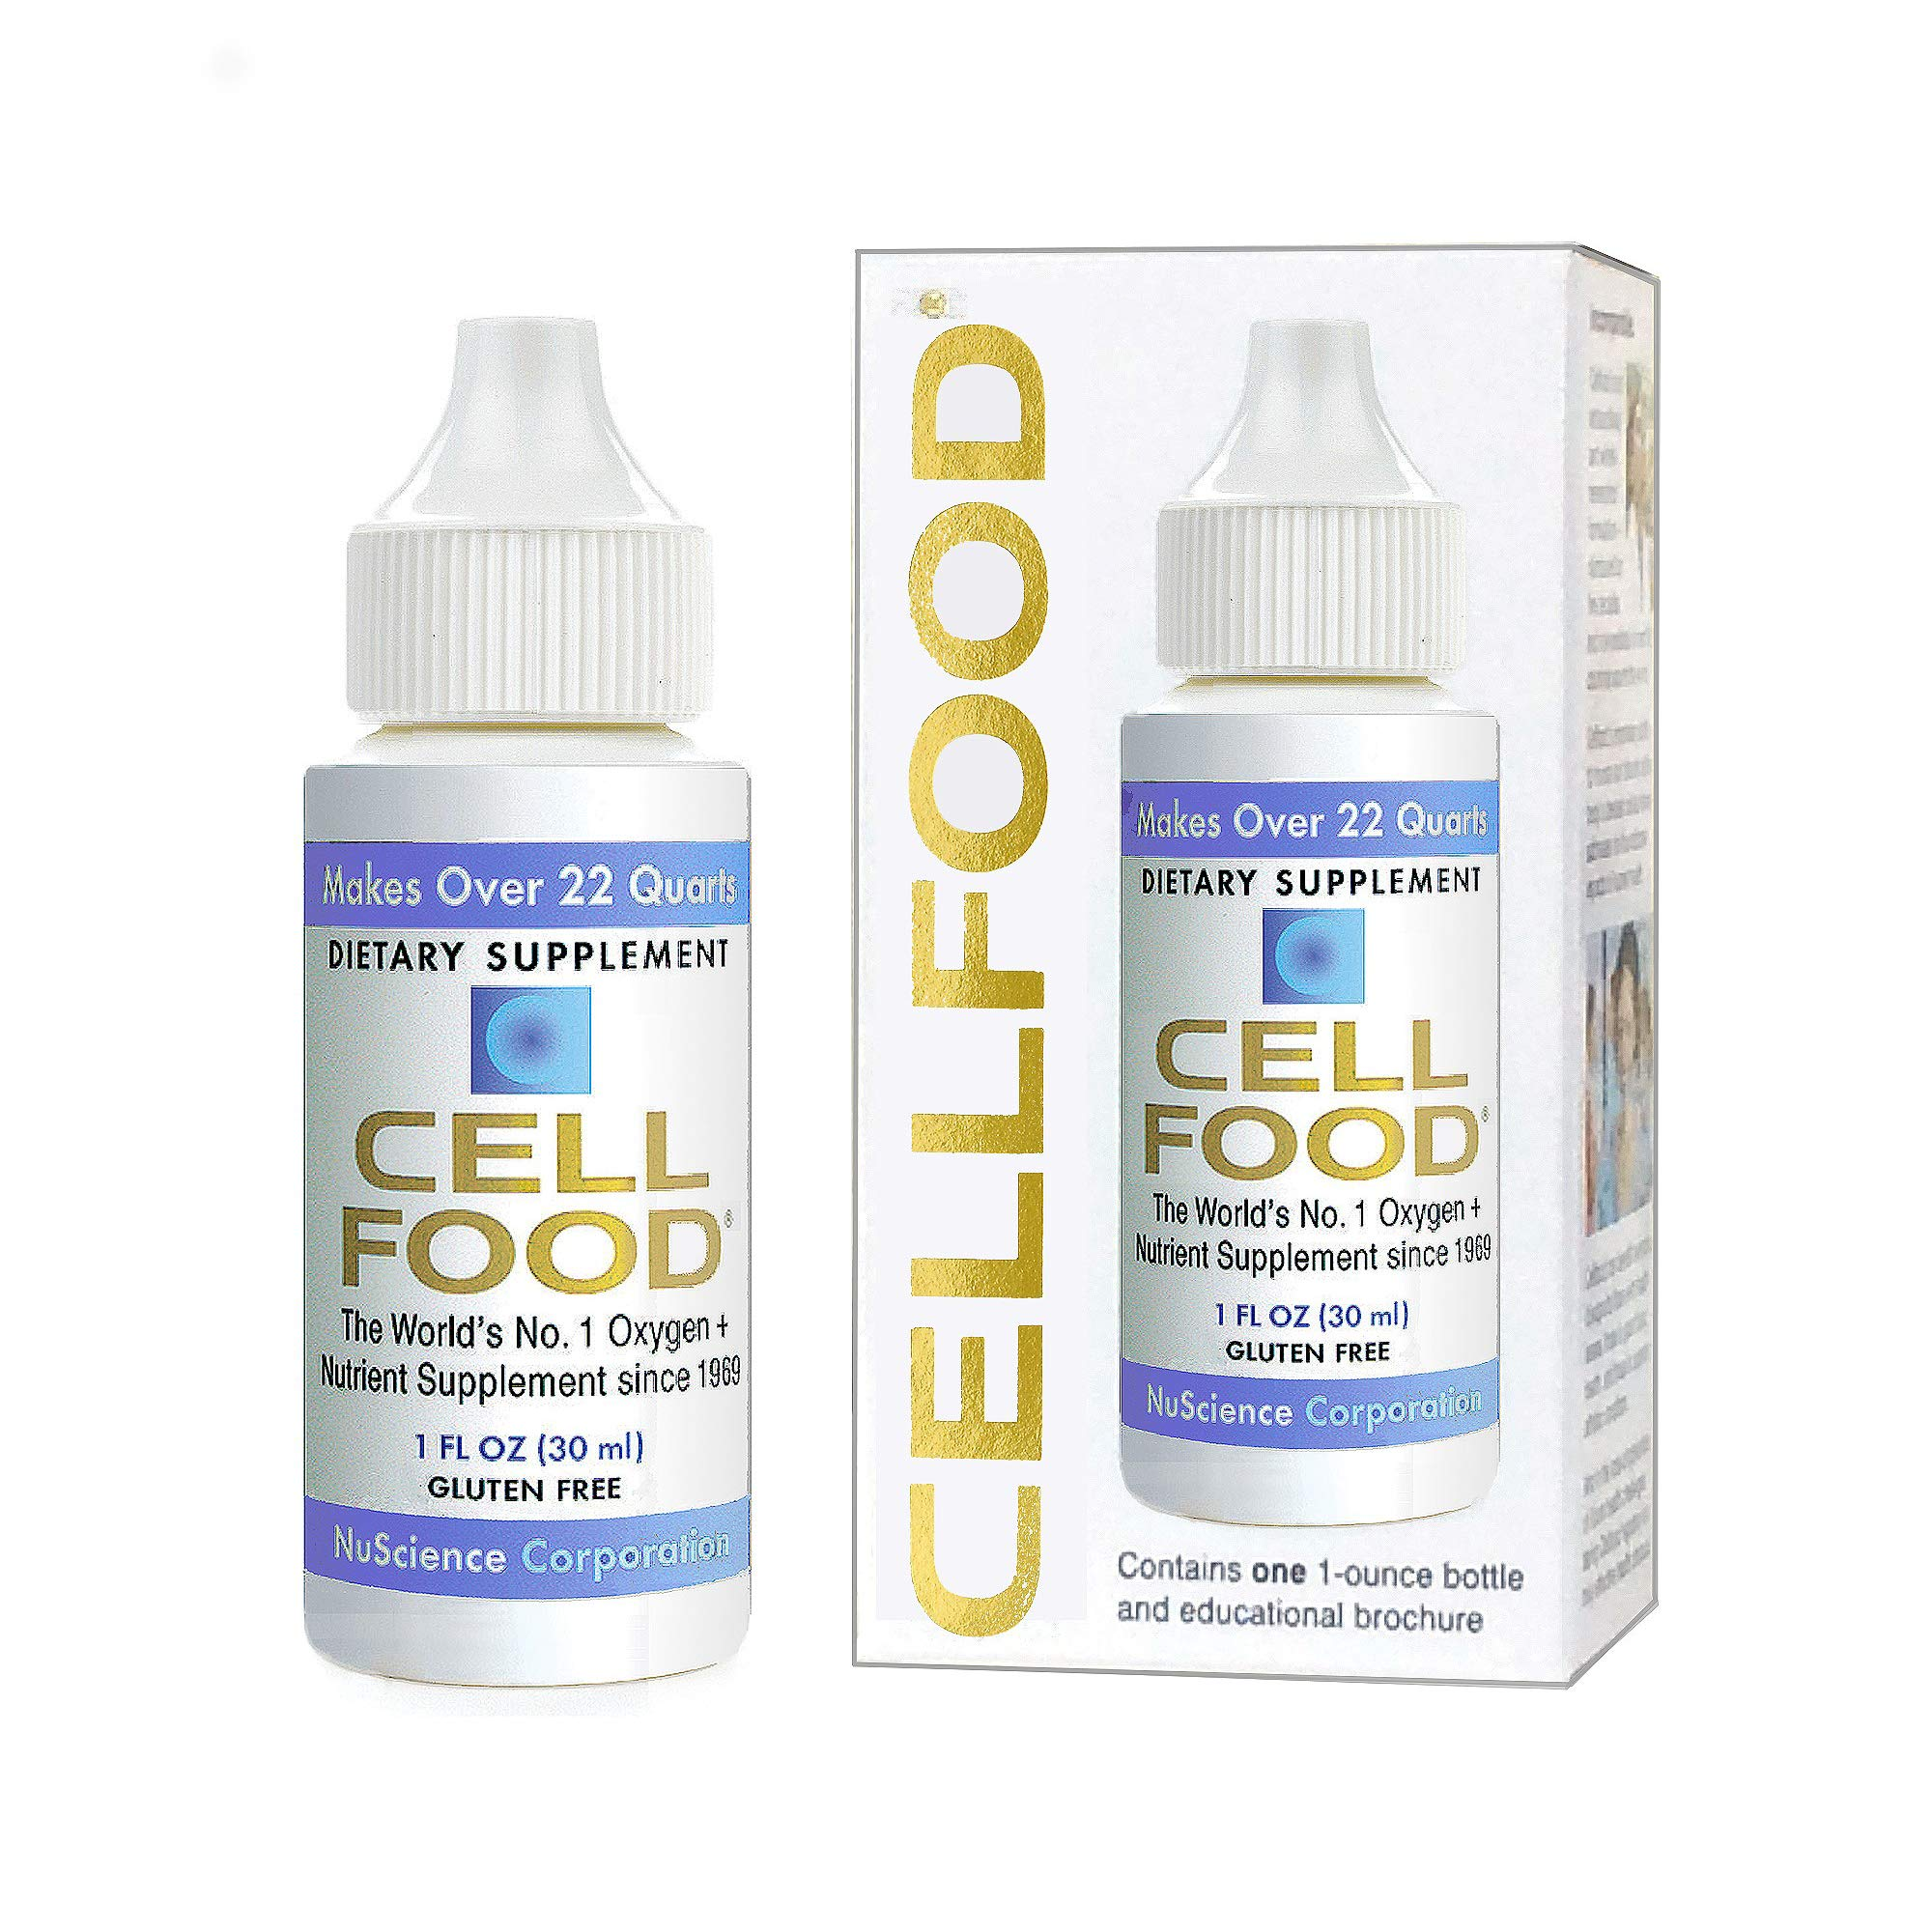 Cellfood Liquid Concentrate, 1 oz. Bottle - Original Oxygenating Formula Containing Seaweed Sourced Minerals, Enzymes, Amino Acids, Electrolytes, Superior Absorption - Gluten Free, GMO Free by Cellfood